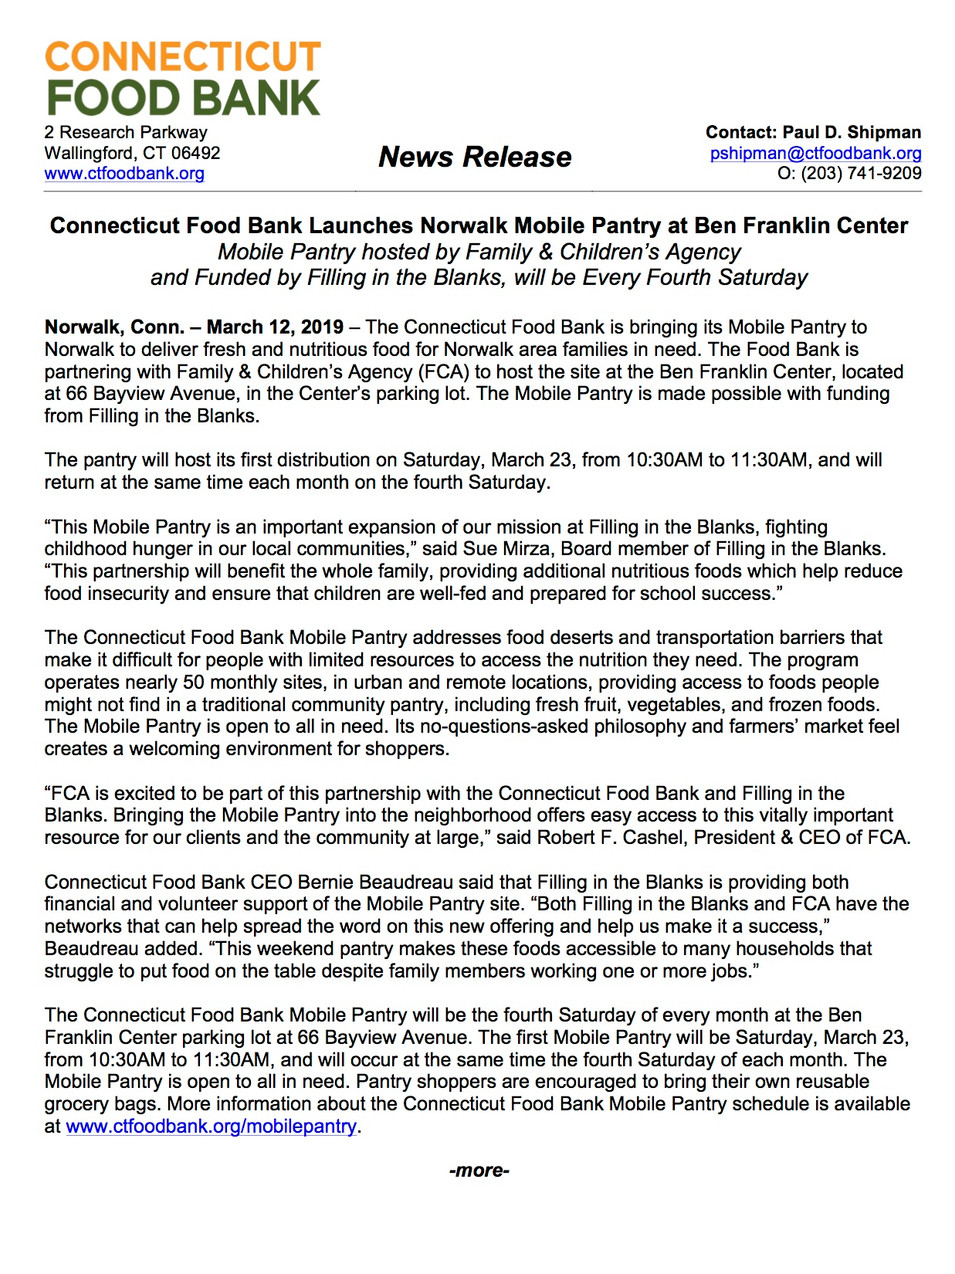 Connecticut Food Bank and Filling in the